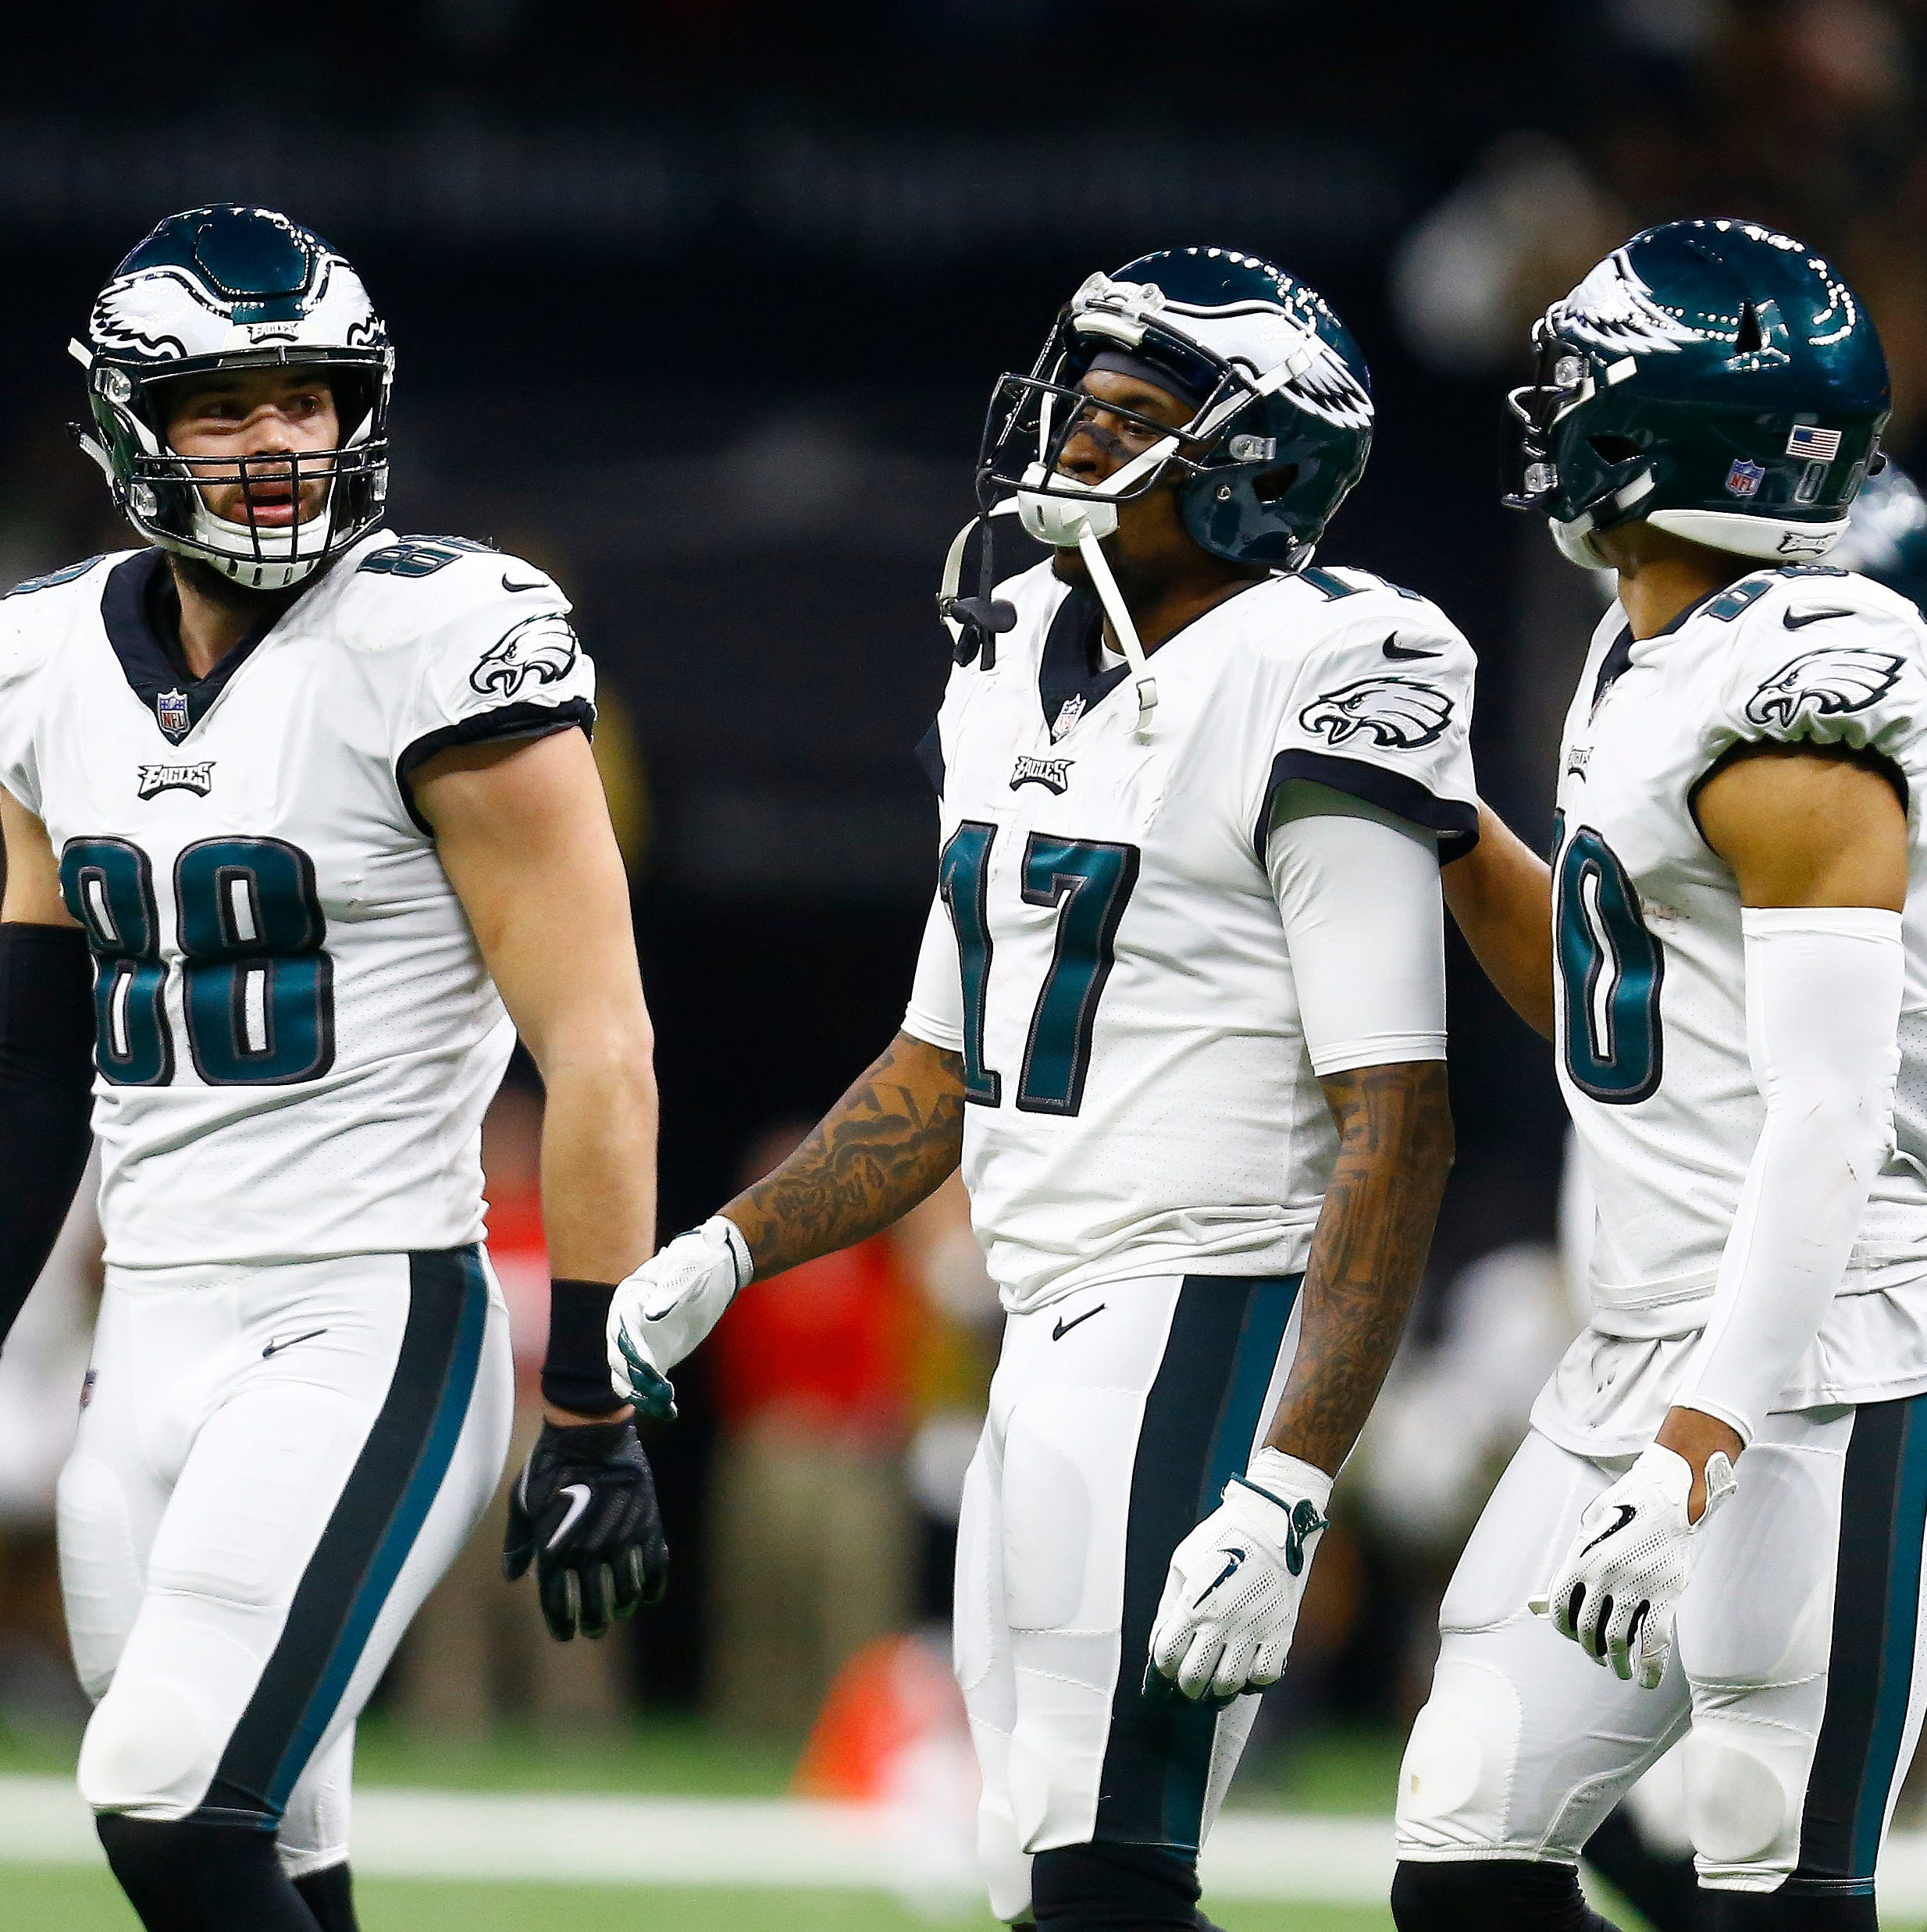 Has the Eagles' Super Bowl window closed, with big changes coming in offseason?